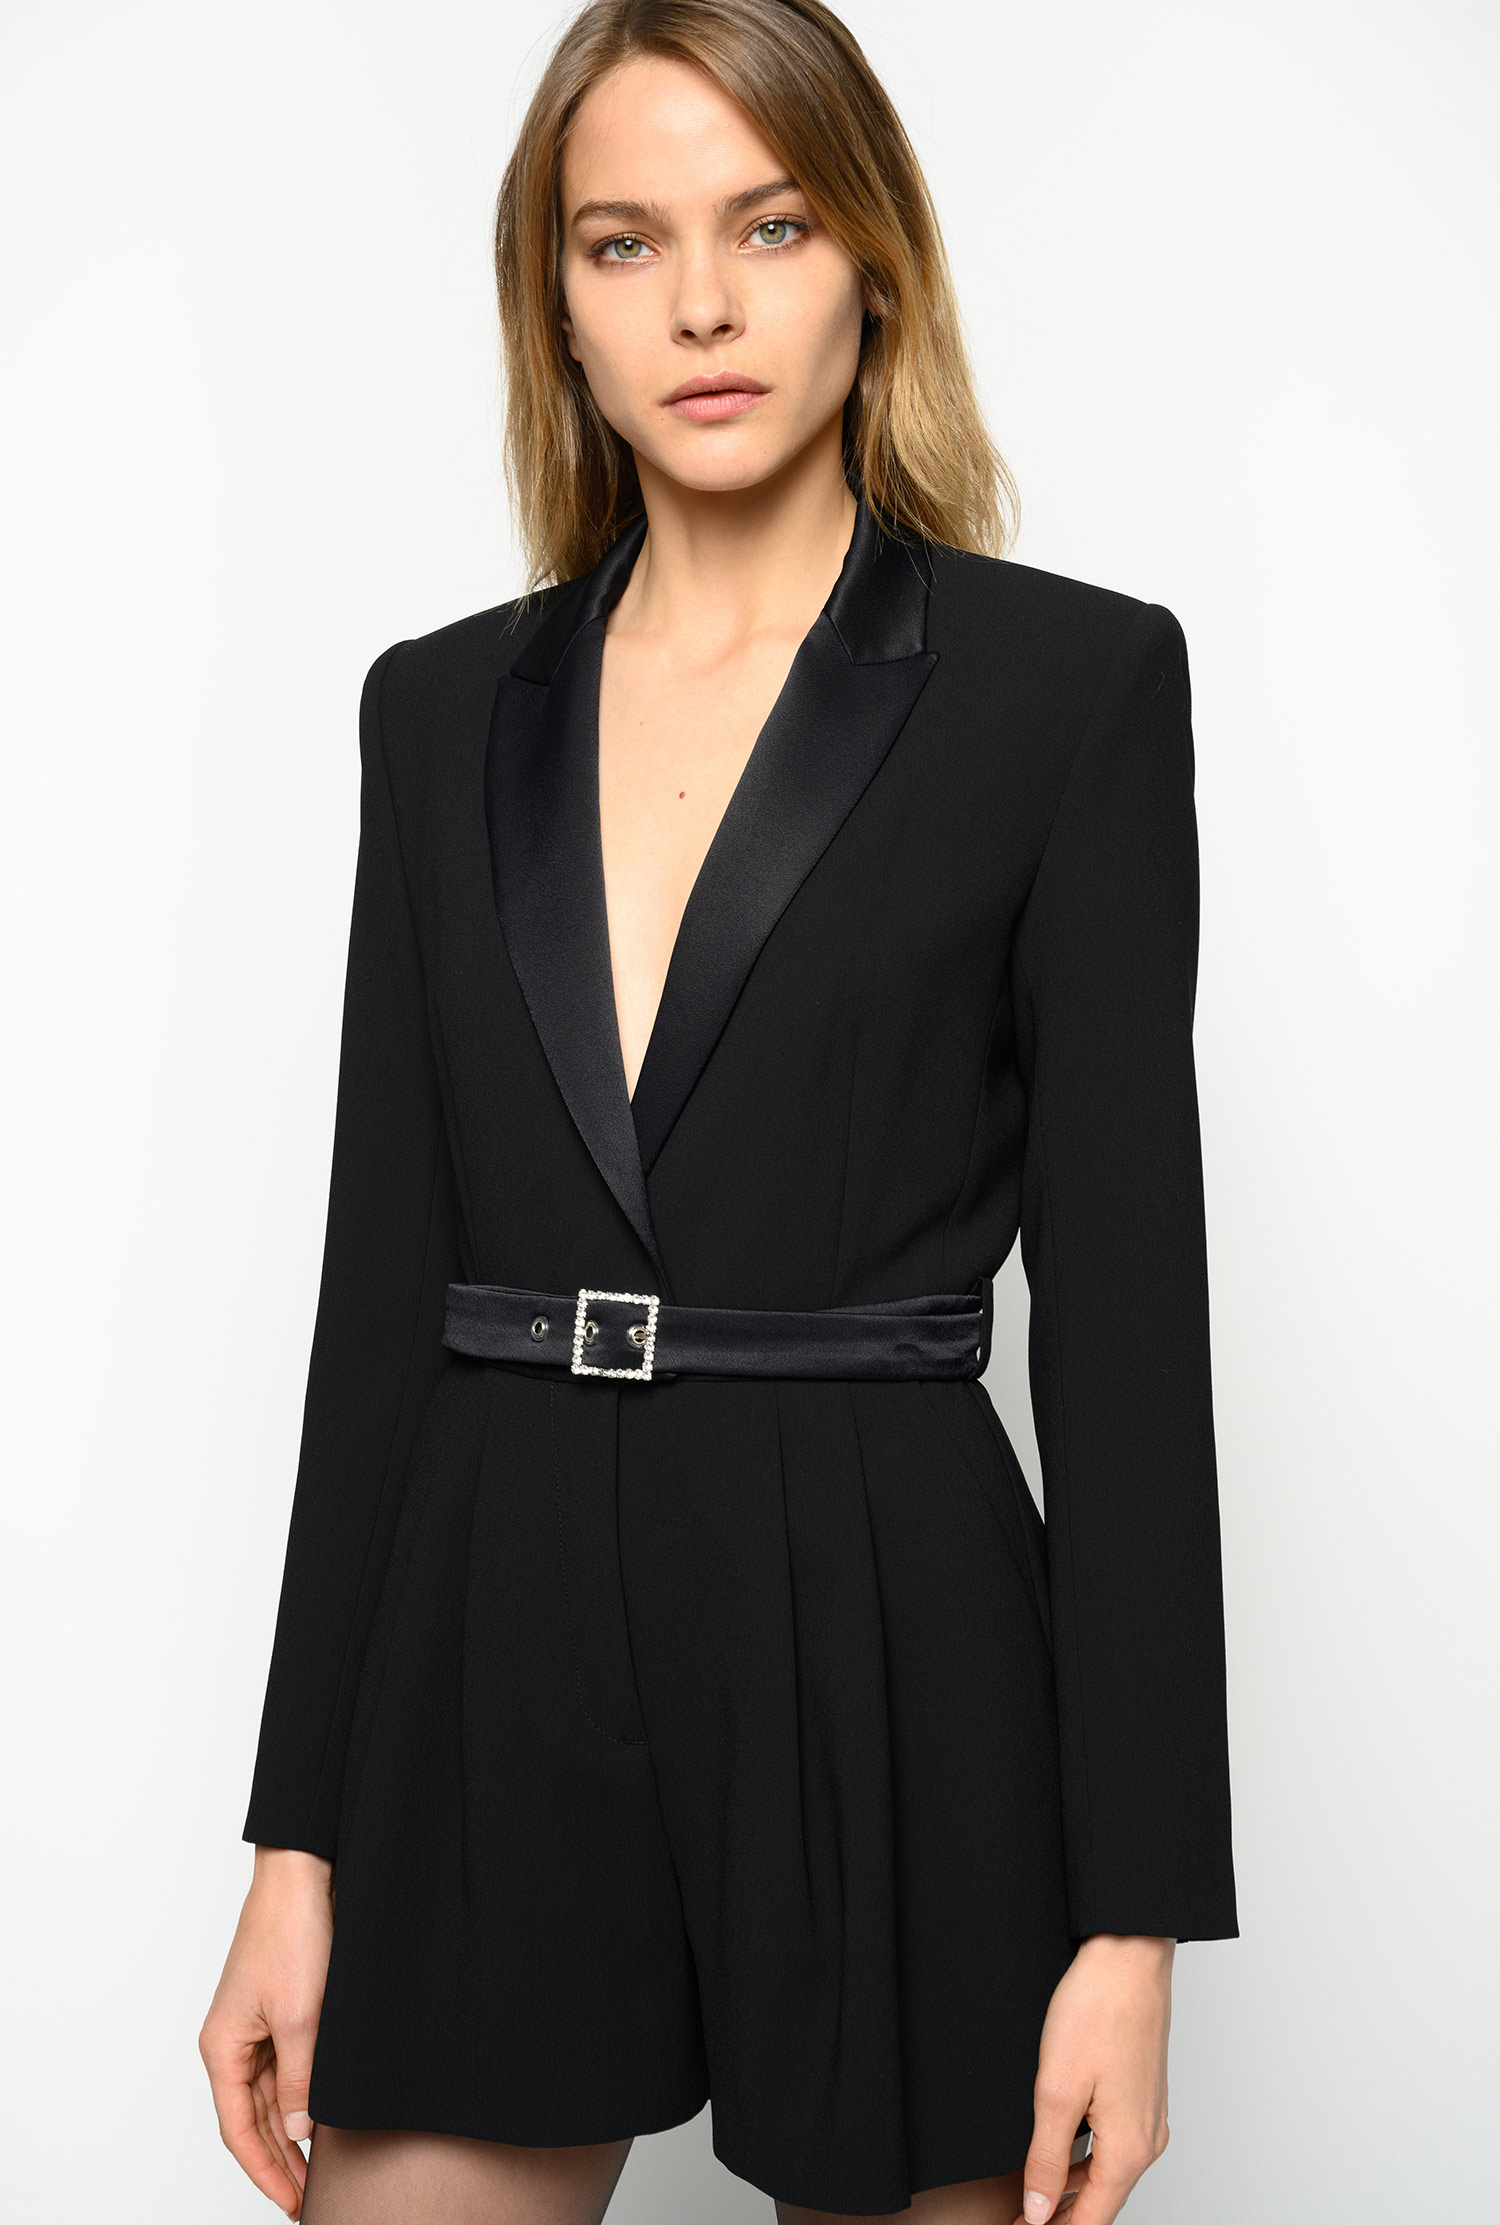 pinko belted jumpsuit